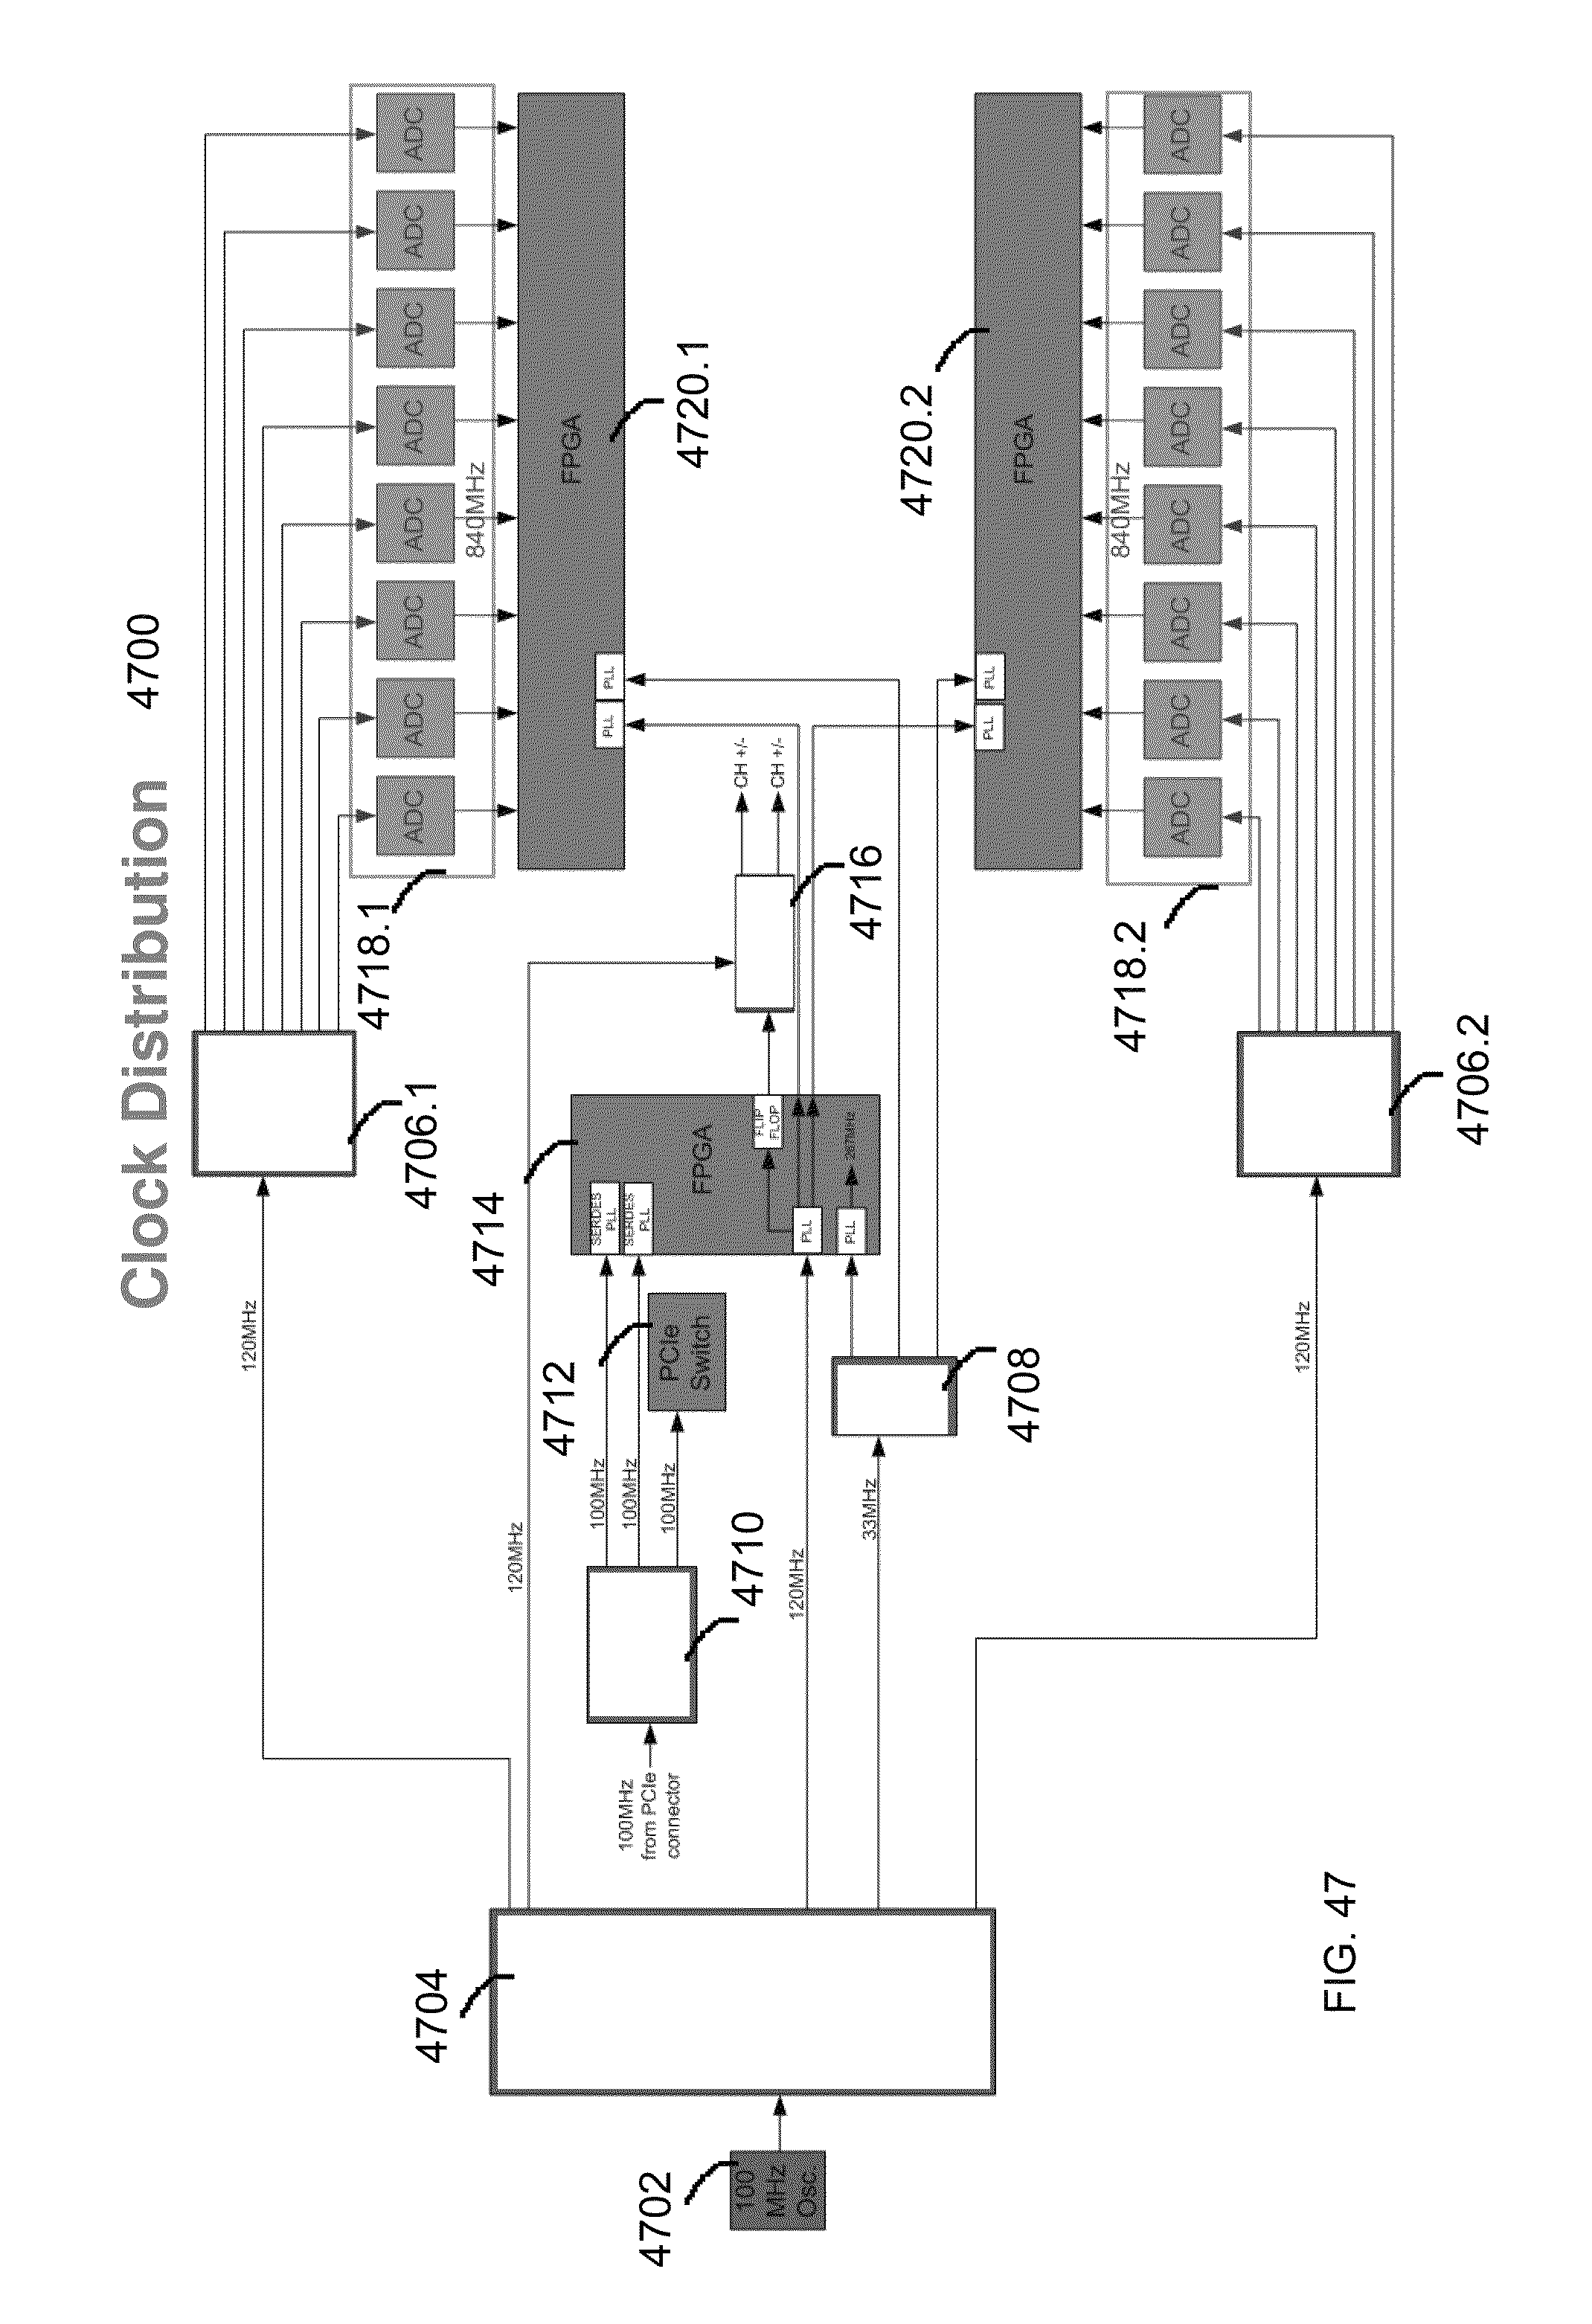 patent us8487790 chemical detection circuit including a patent drawing